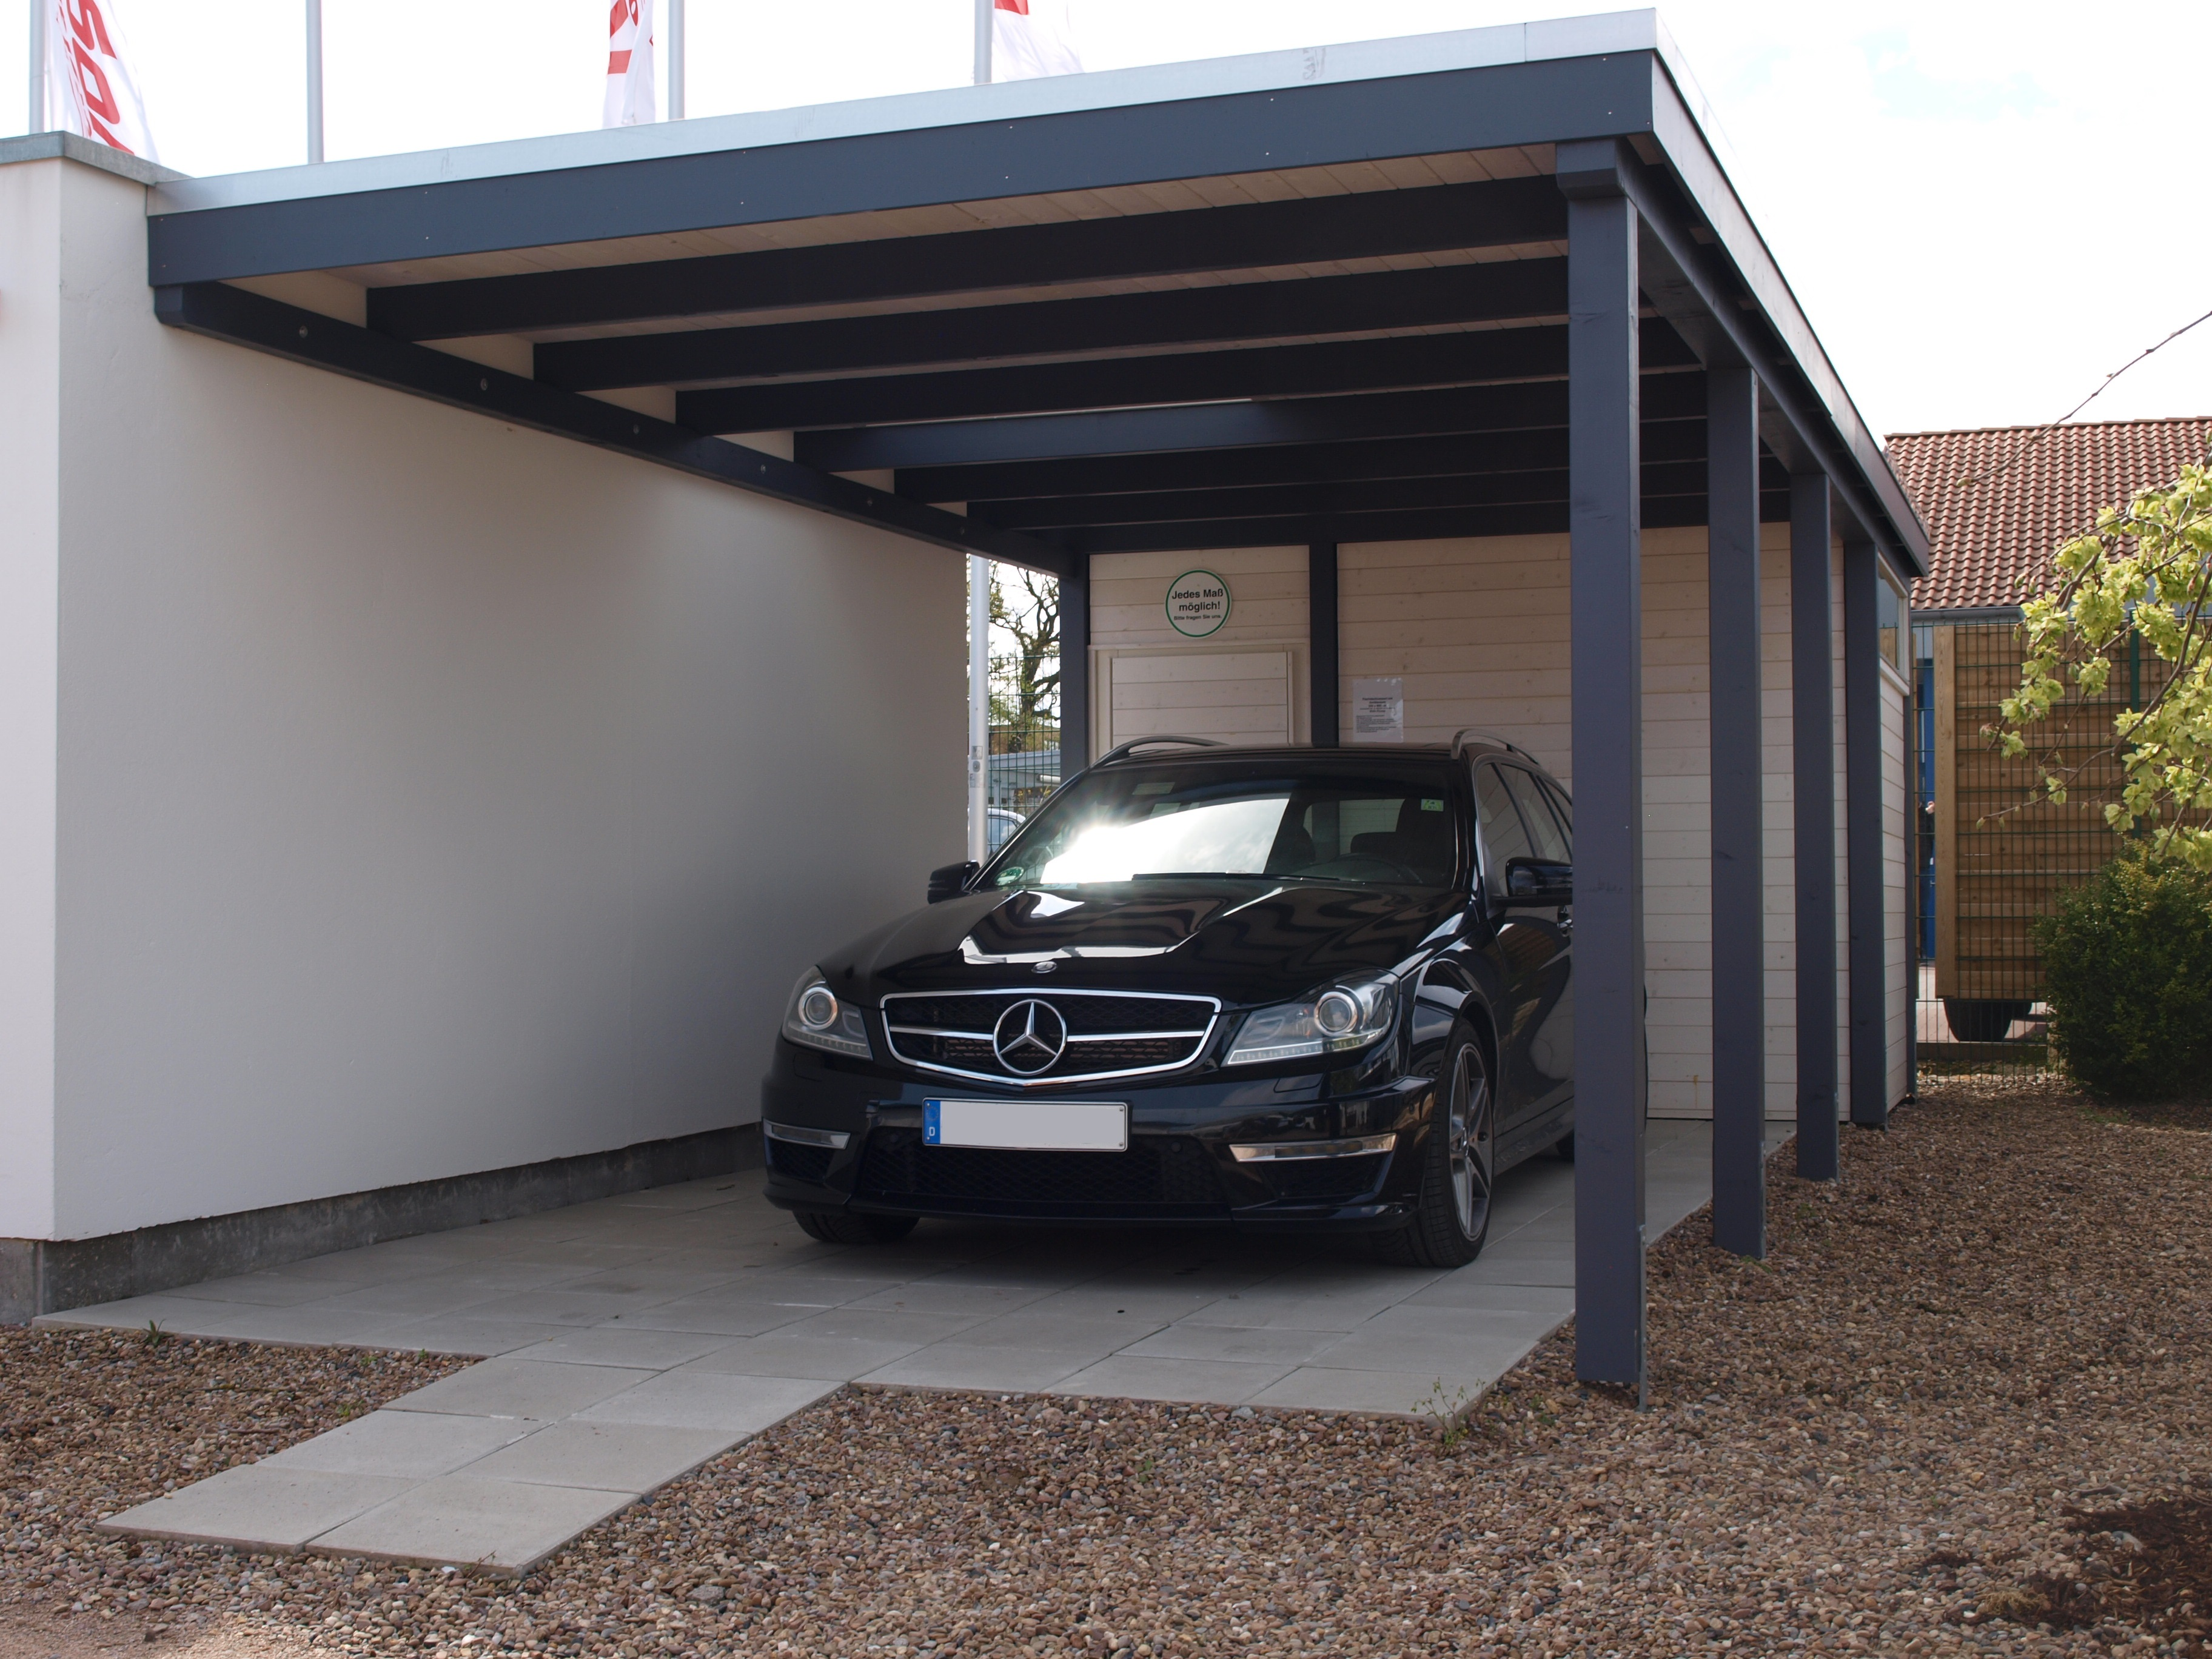 wandanlehncarport anlehncarport carport 5 00 x 8 00 m mit ger teraum ebay. Black Bedroom Furniture Sets. Home Design Ideas